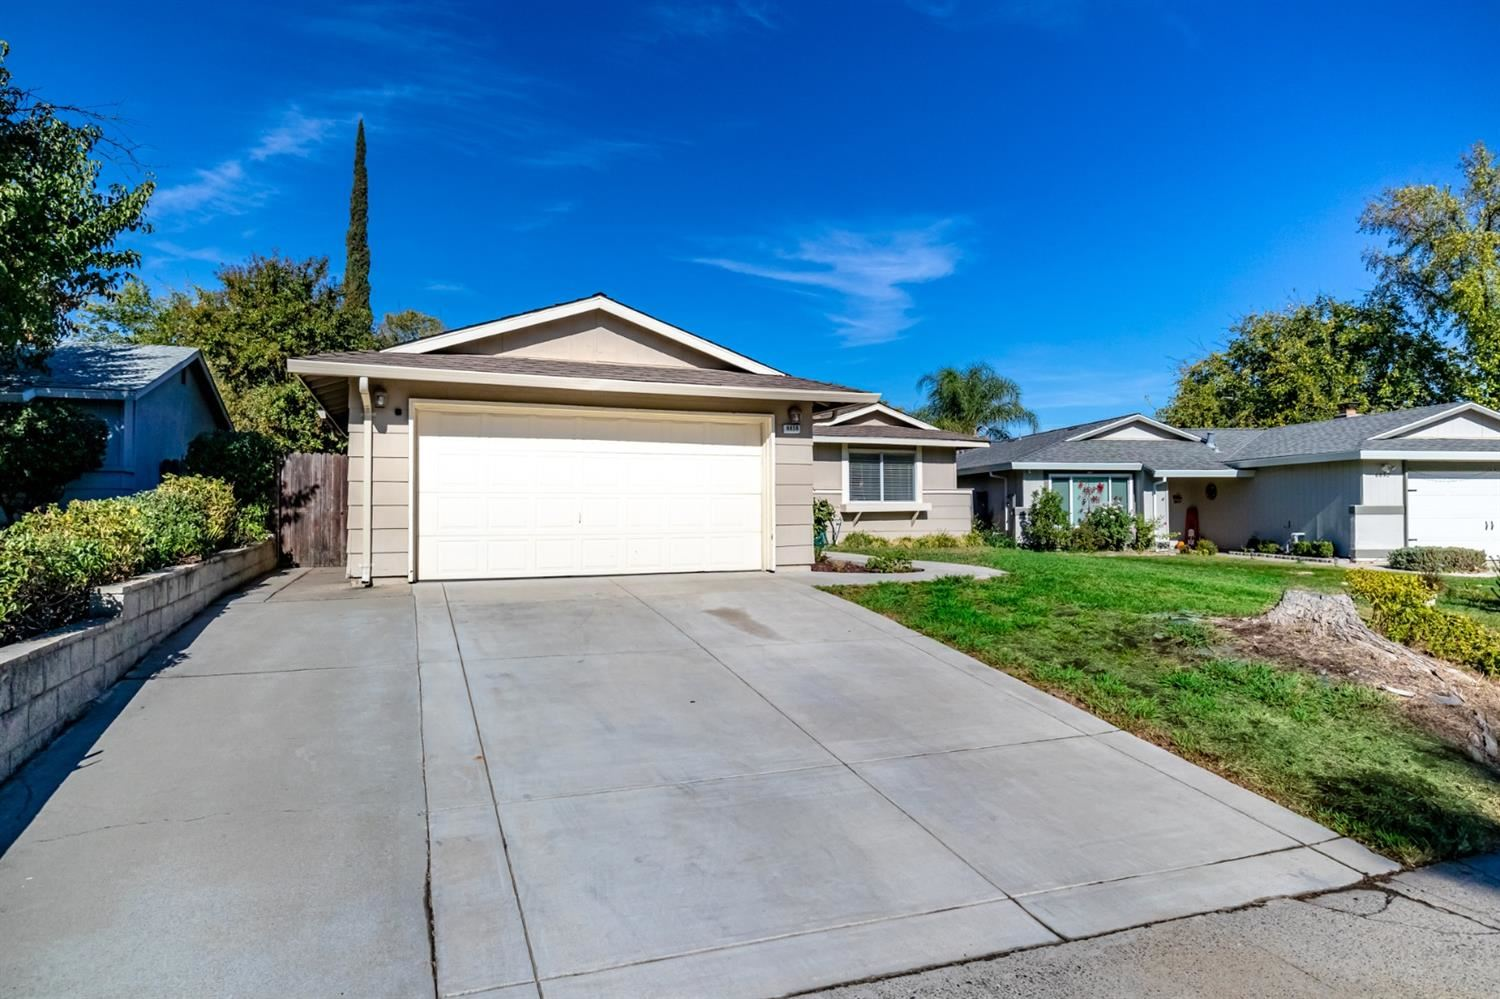 Photo of 6856 Donerail Drive, Sacramento, CA 95842 (MLS # 20060158)